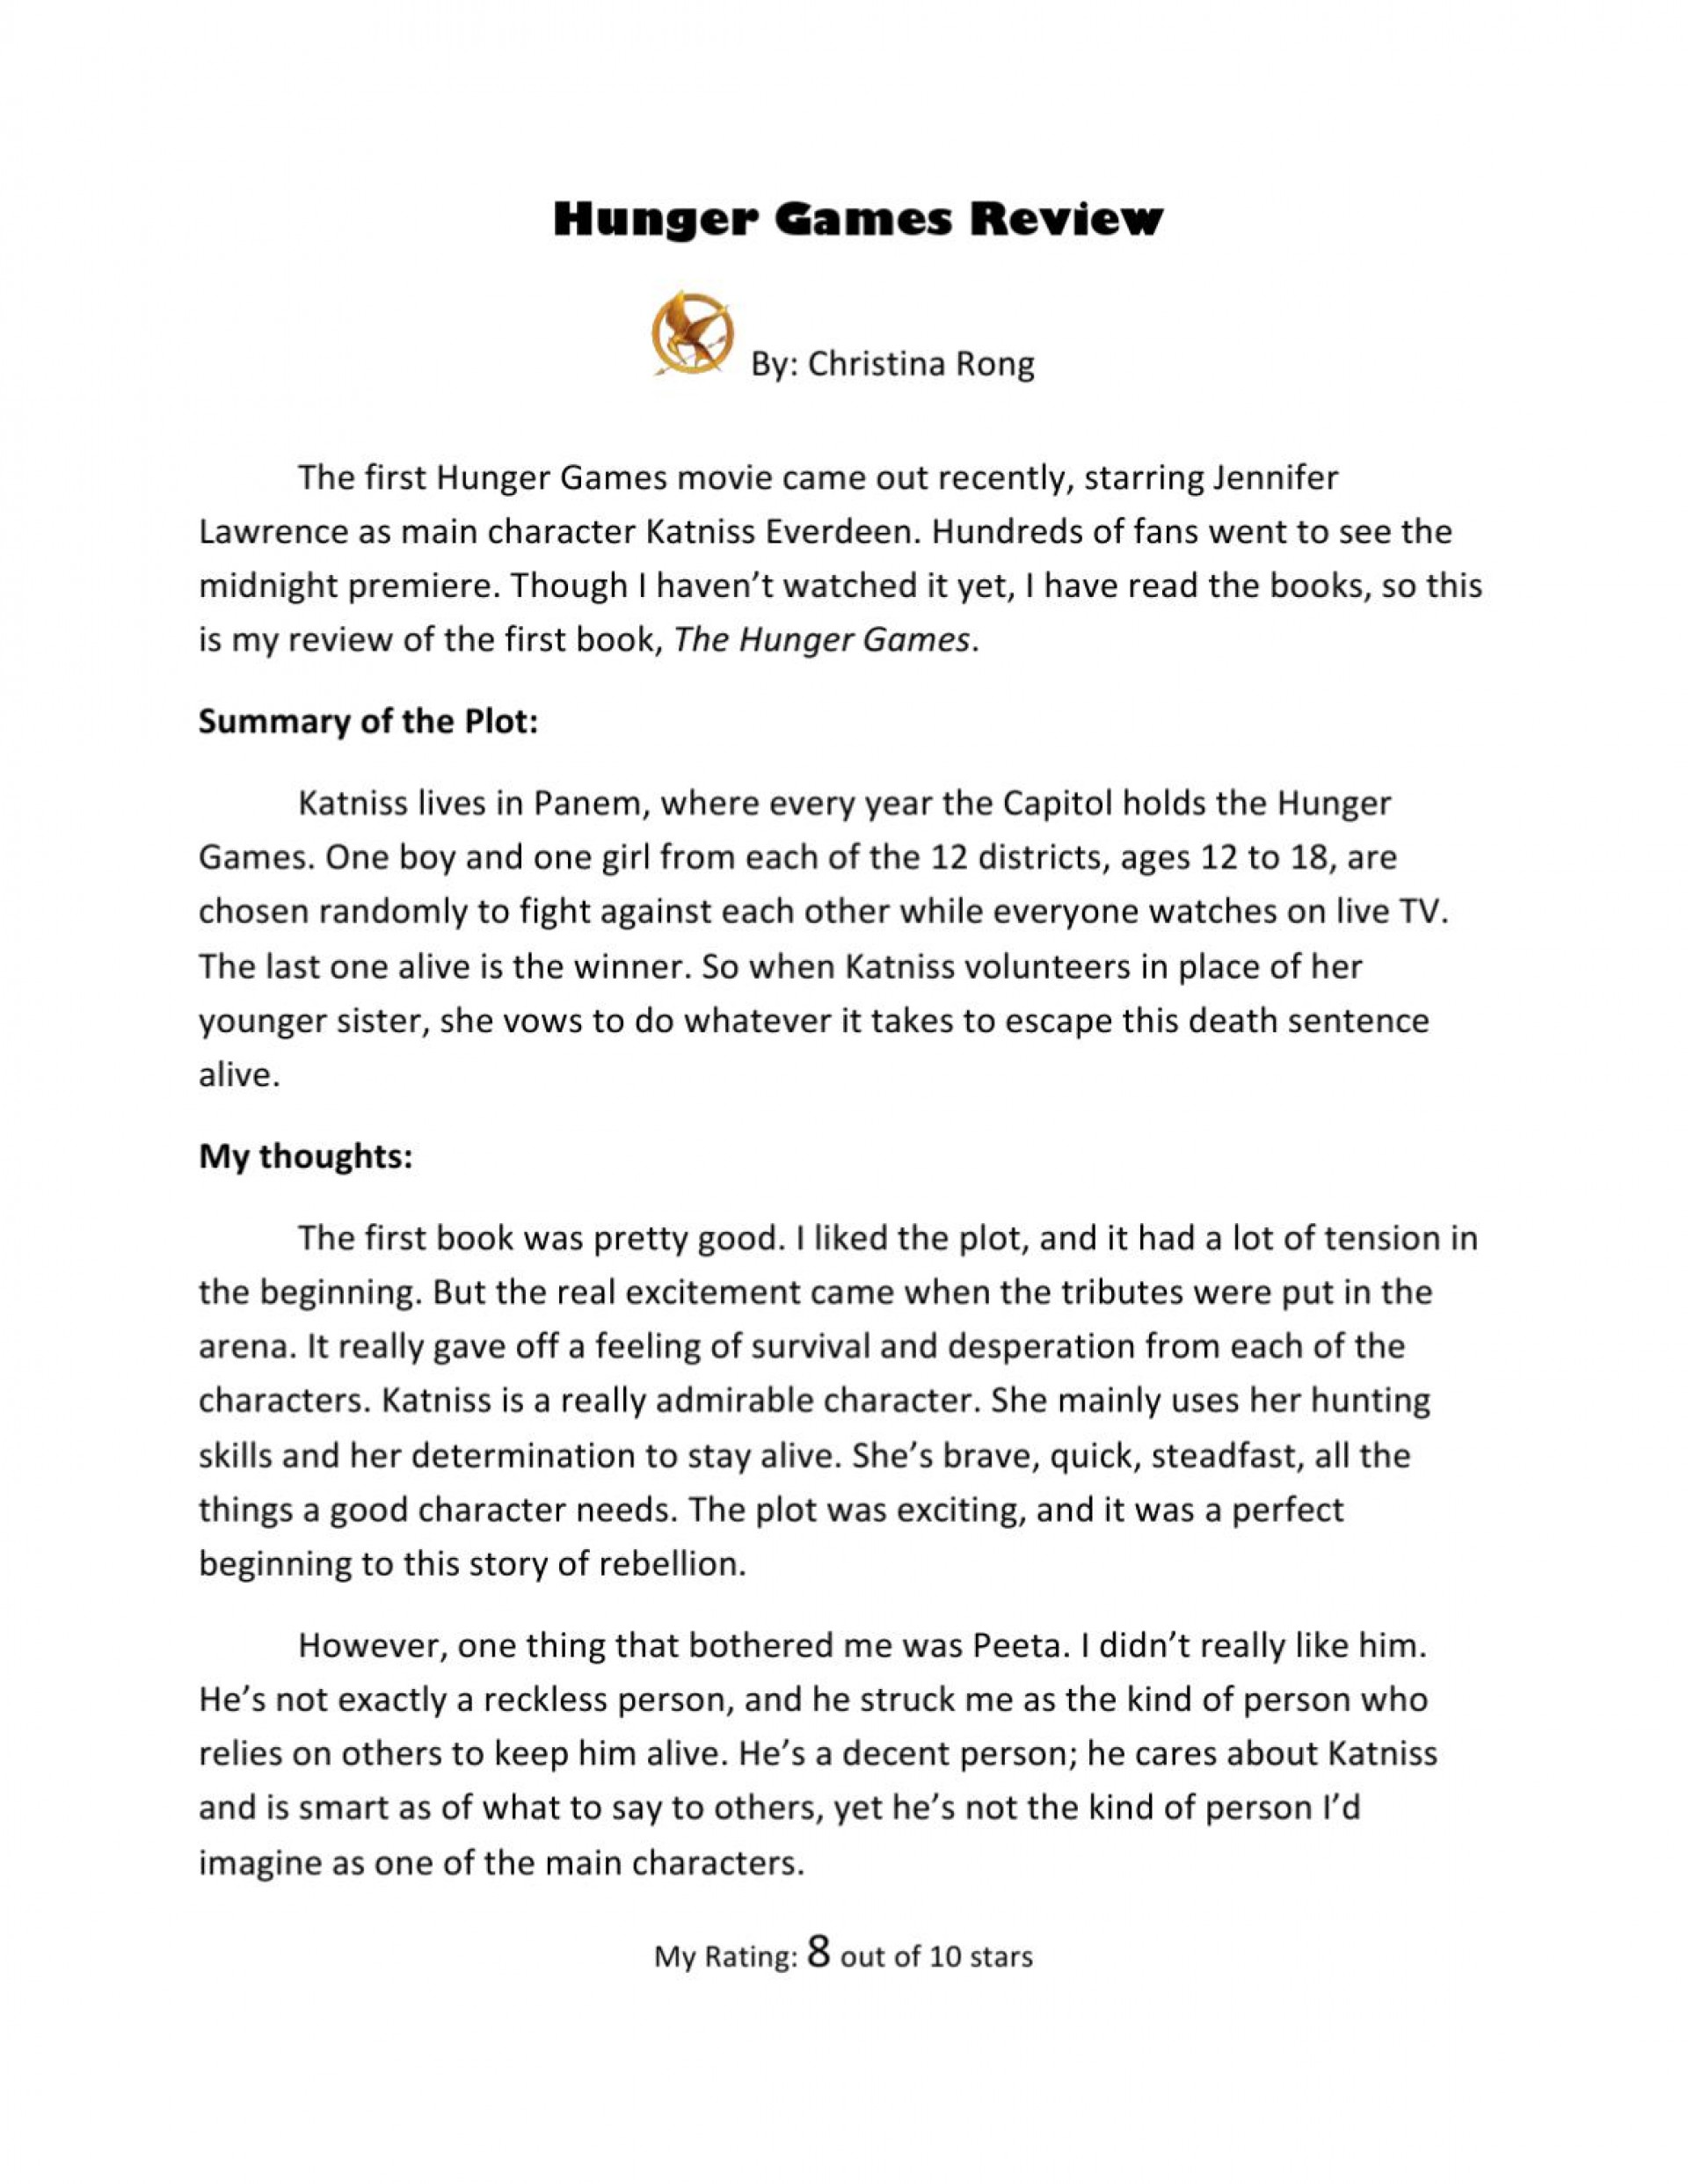 015 Essay Example Page 1 The Hunger Games Book Imposing Review 1920